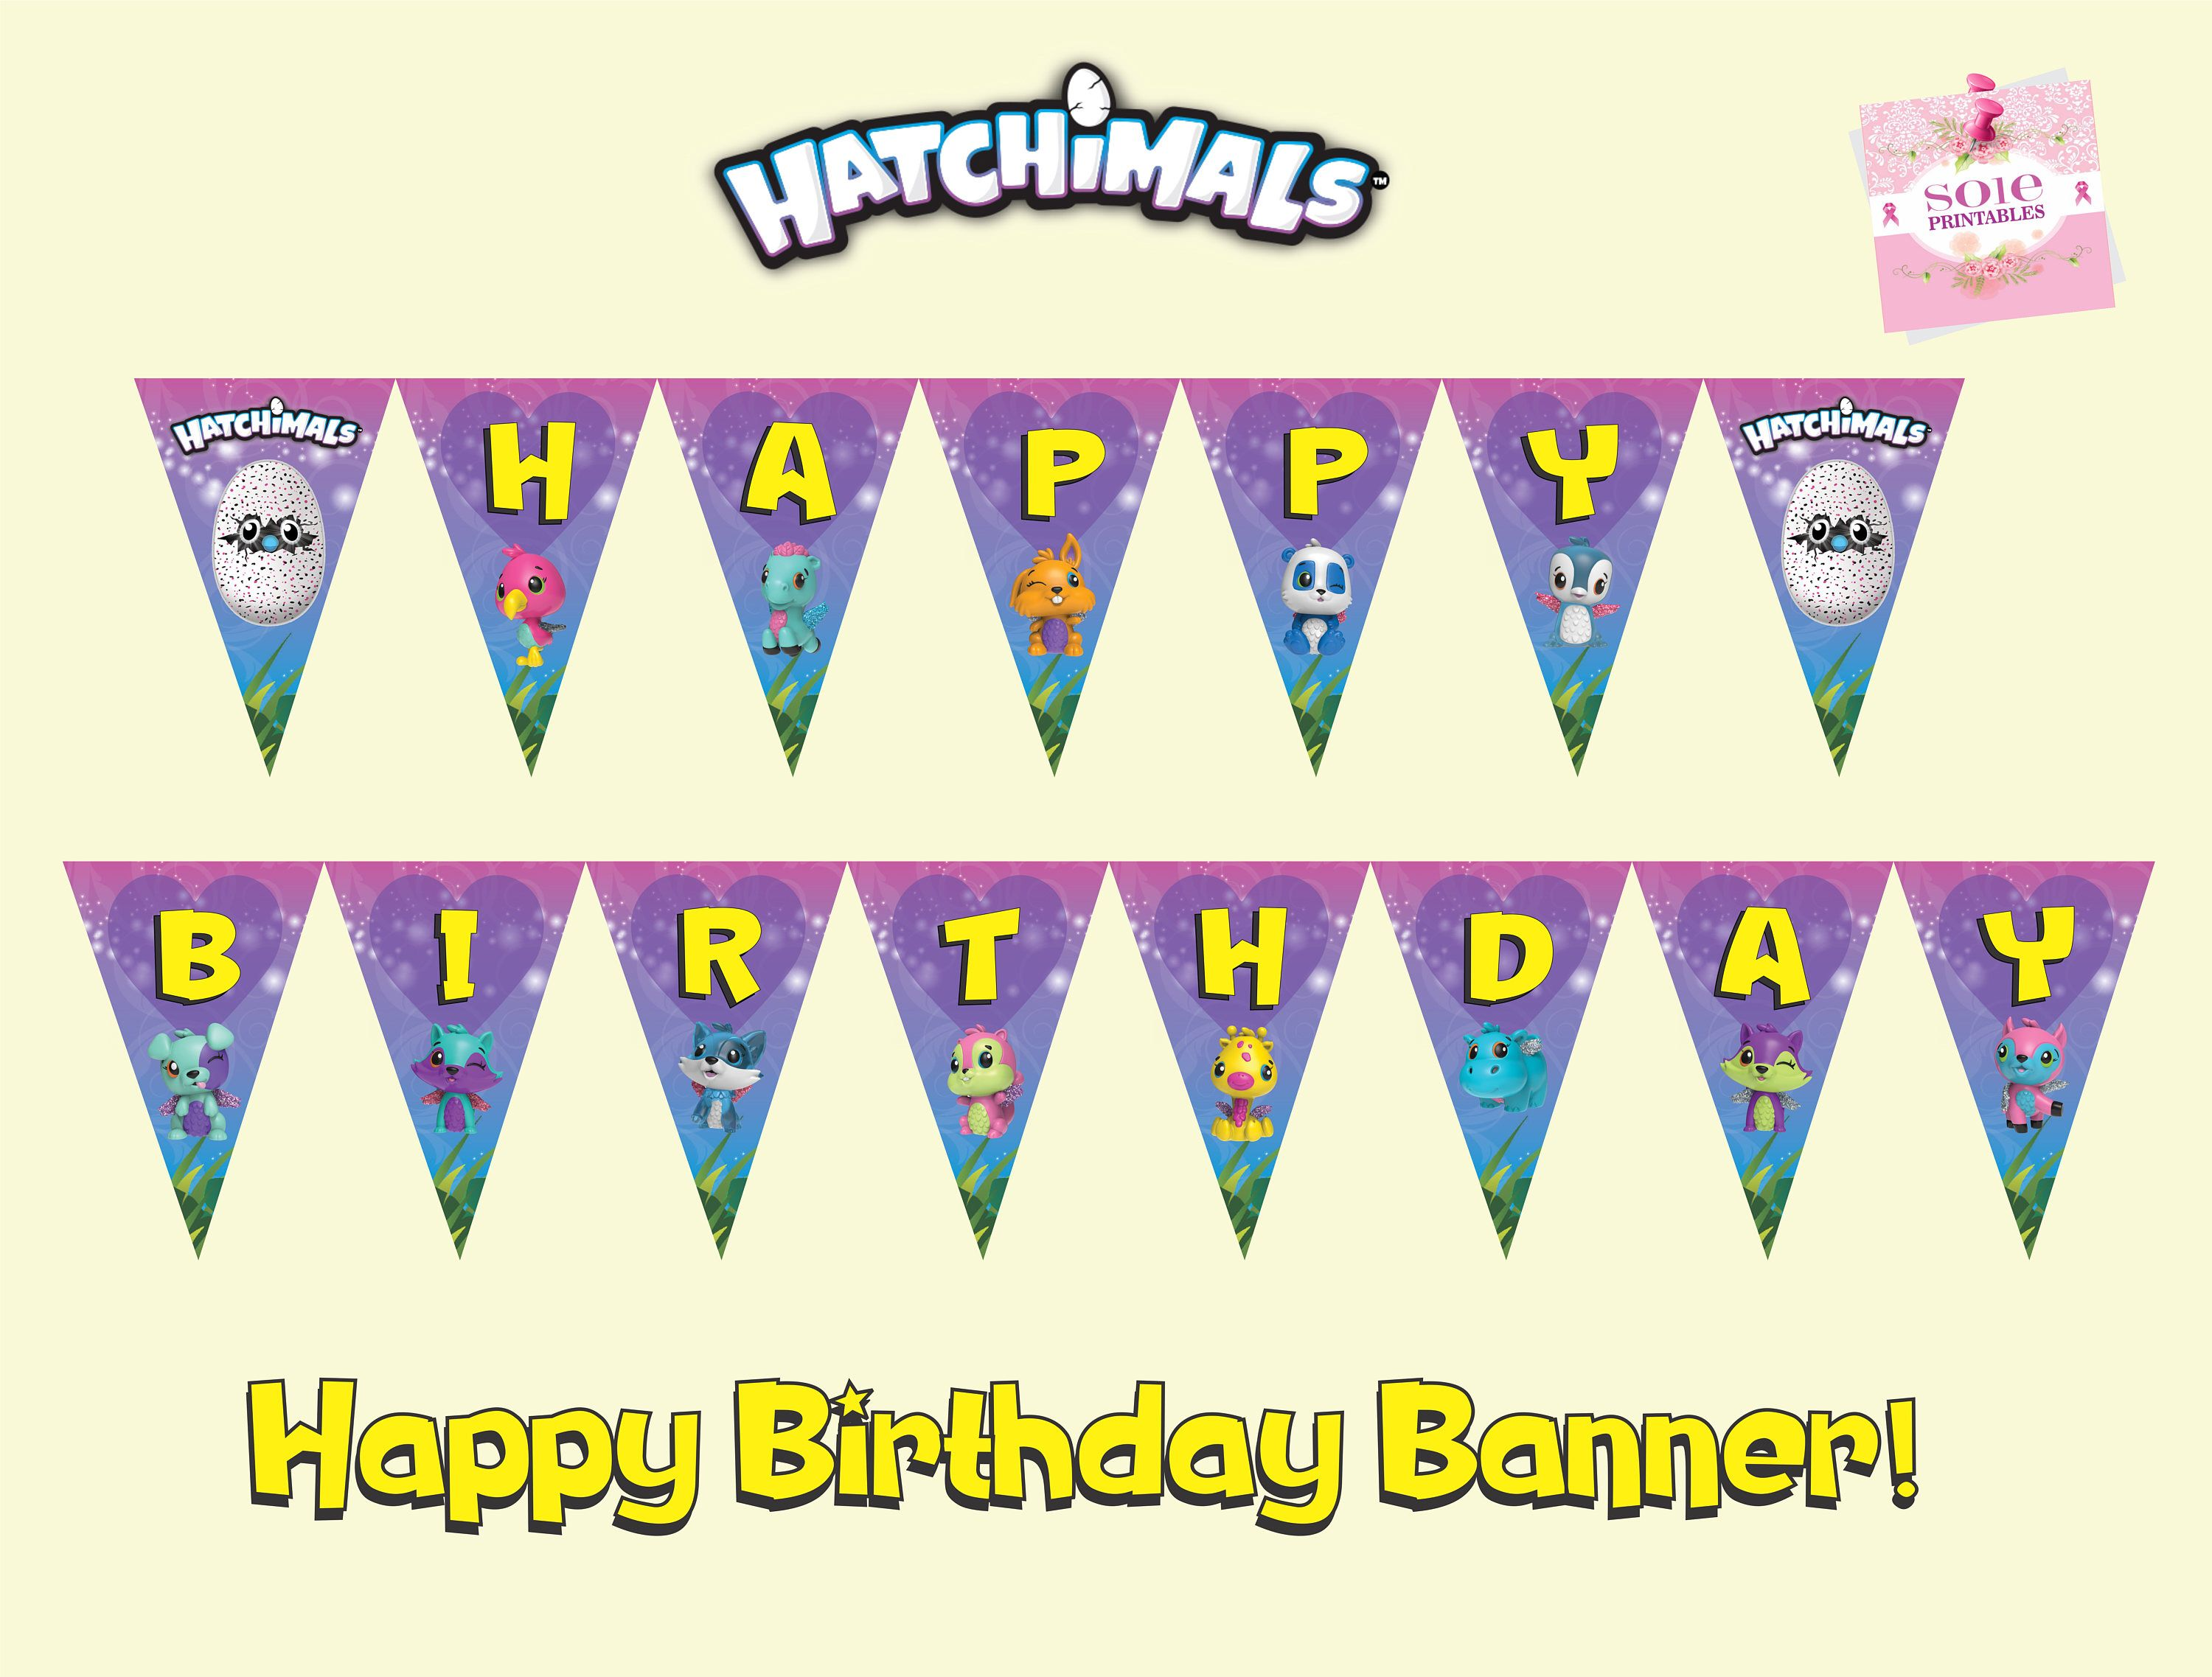 Hatchimals Colleggtibles Flag Banner Happy Birthday Instant Download By SolePrintables On Etsy